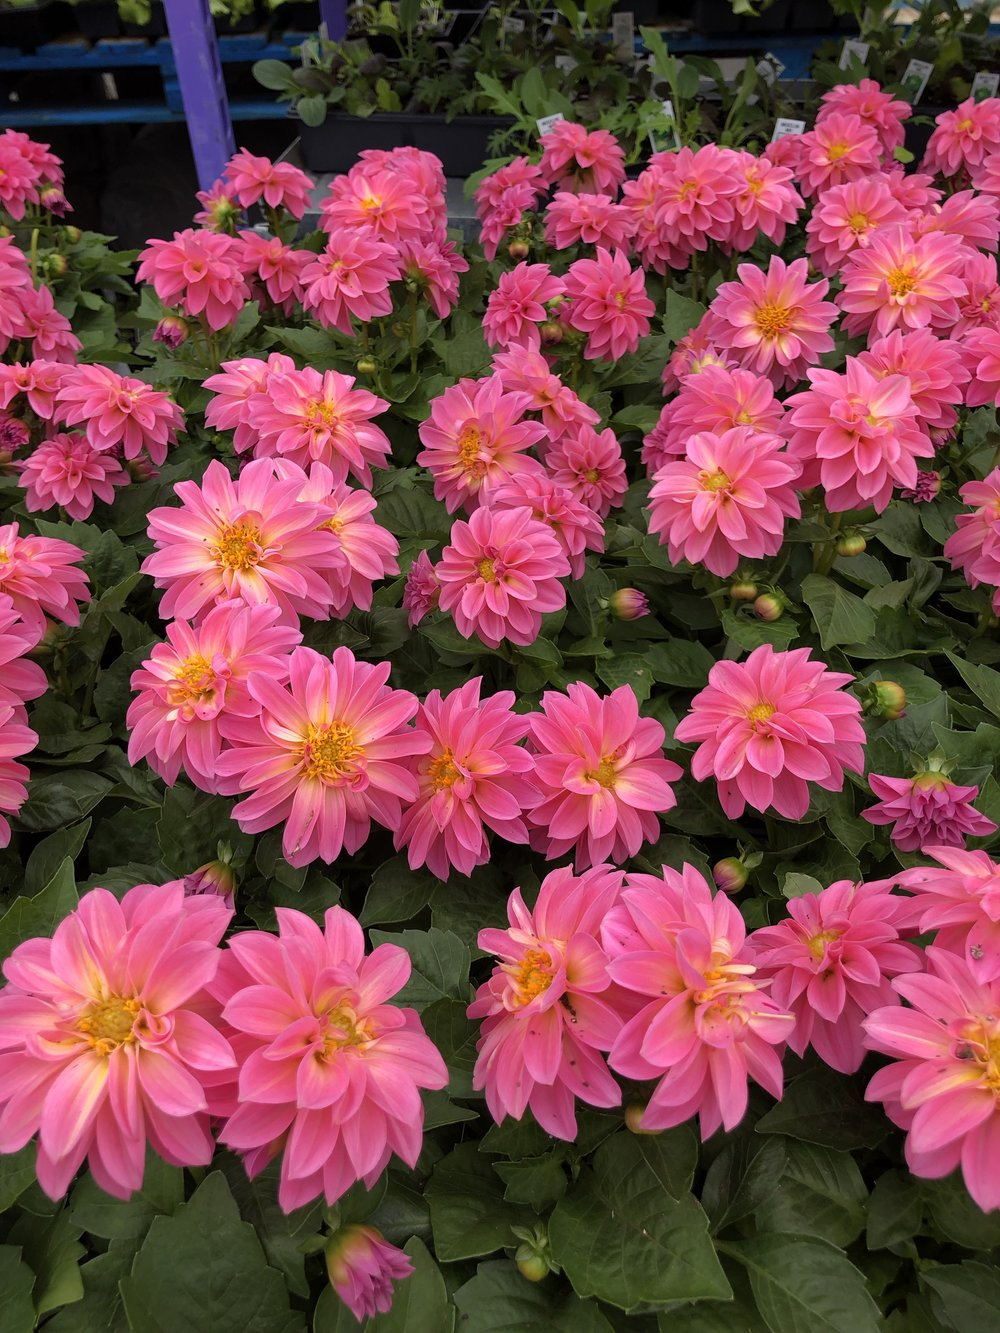 Bright pink Dahlias at Russo's! Watch for our Tony's Tips on this beautiful flower.